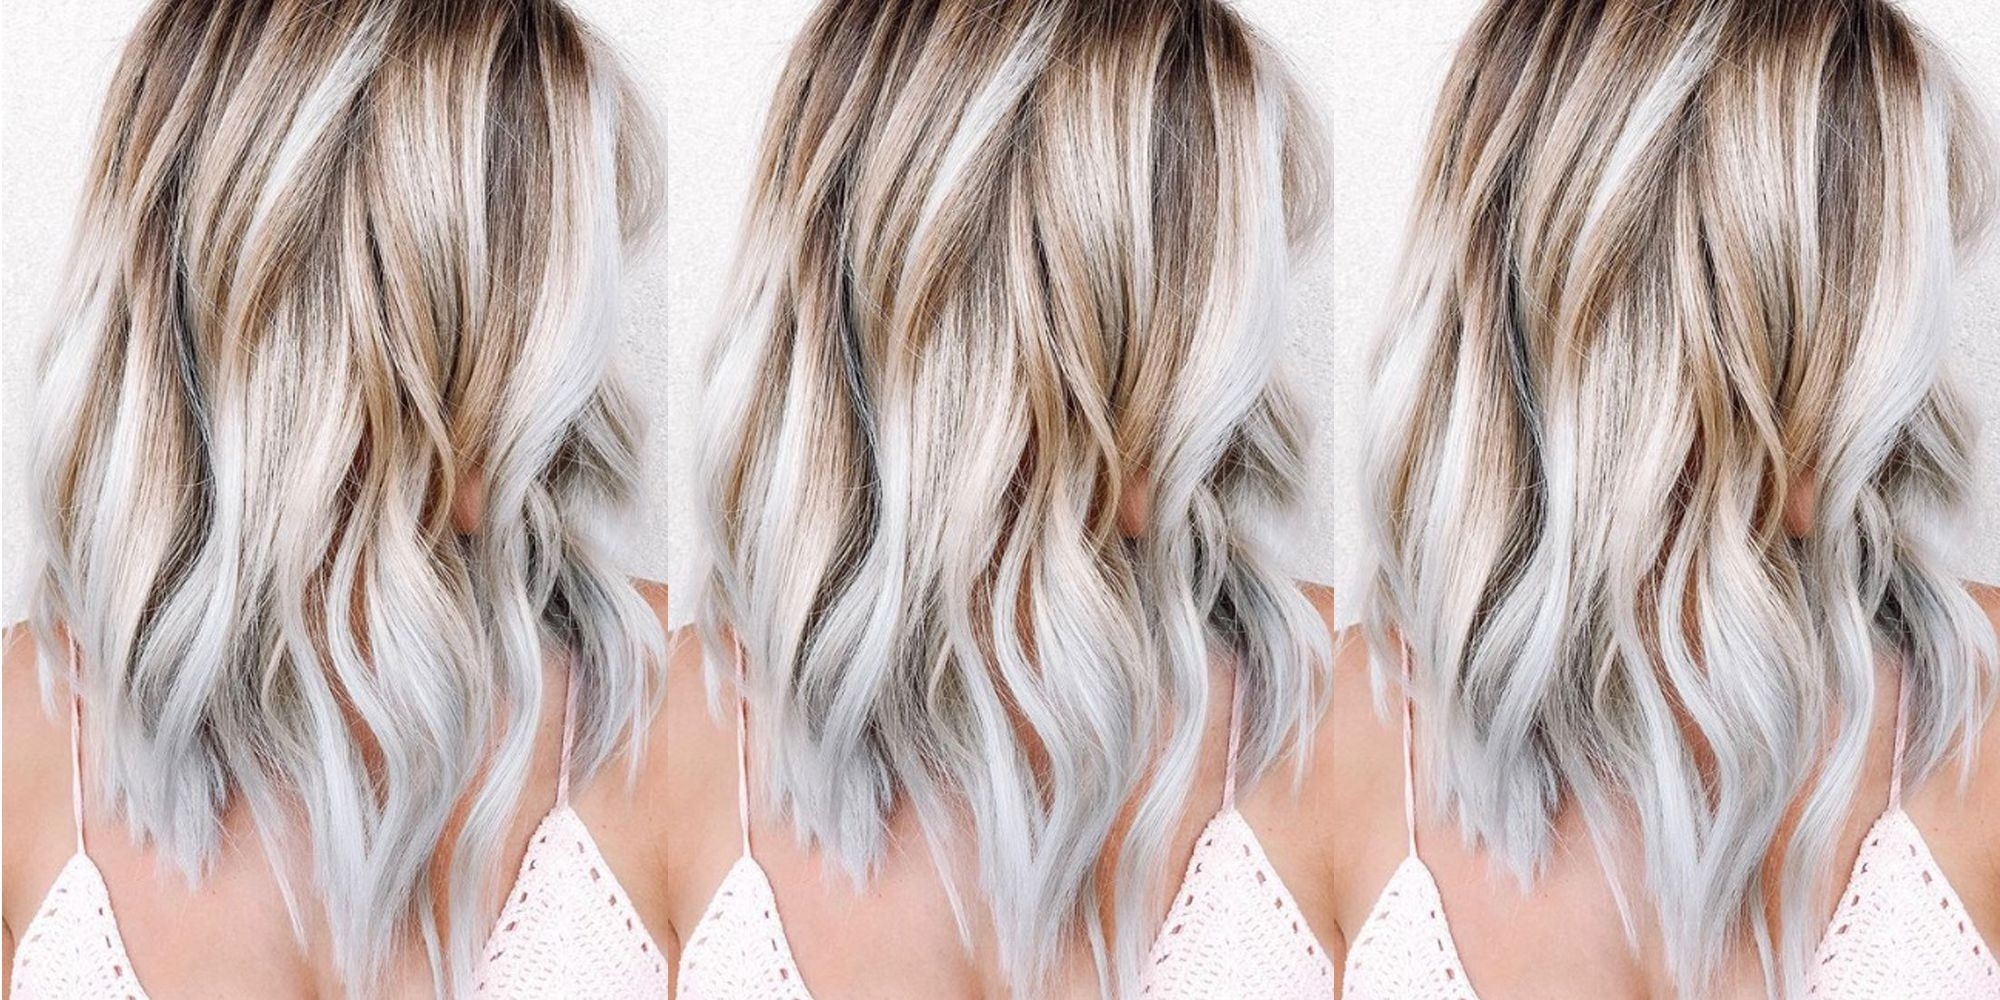 7 Blonde Hair Trends For Summer 2018 – New Ways To Try Blonde Hair In Latest Dark Roots And Icy Cool Ends Blonde Hairstyles (View 4 of 20)